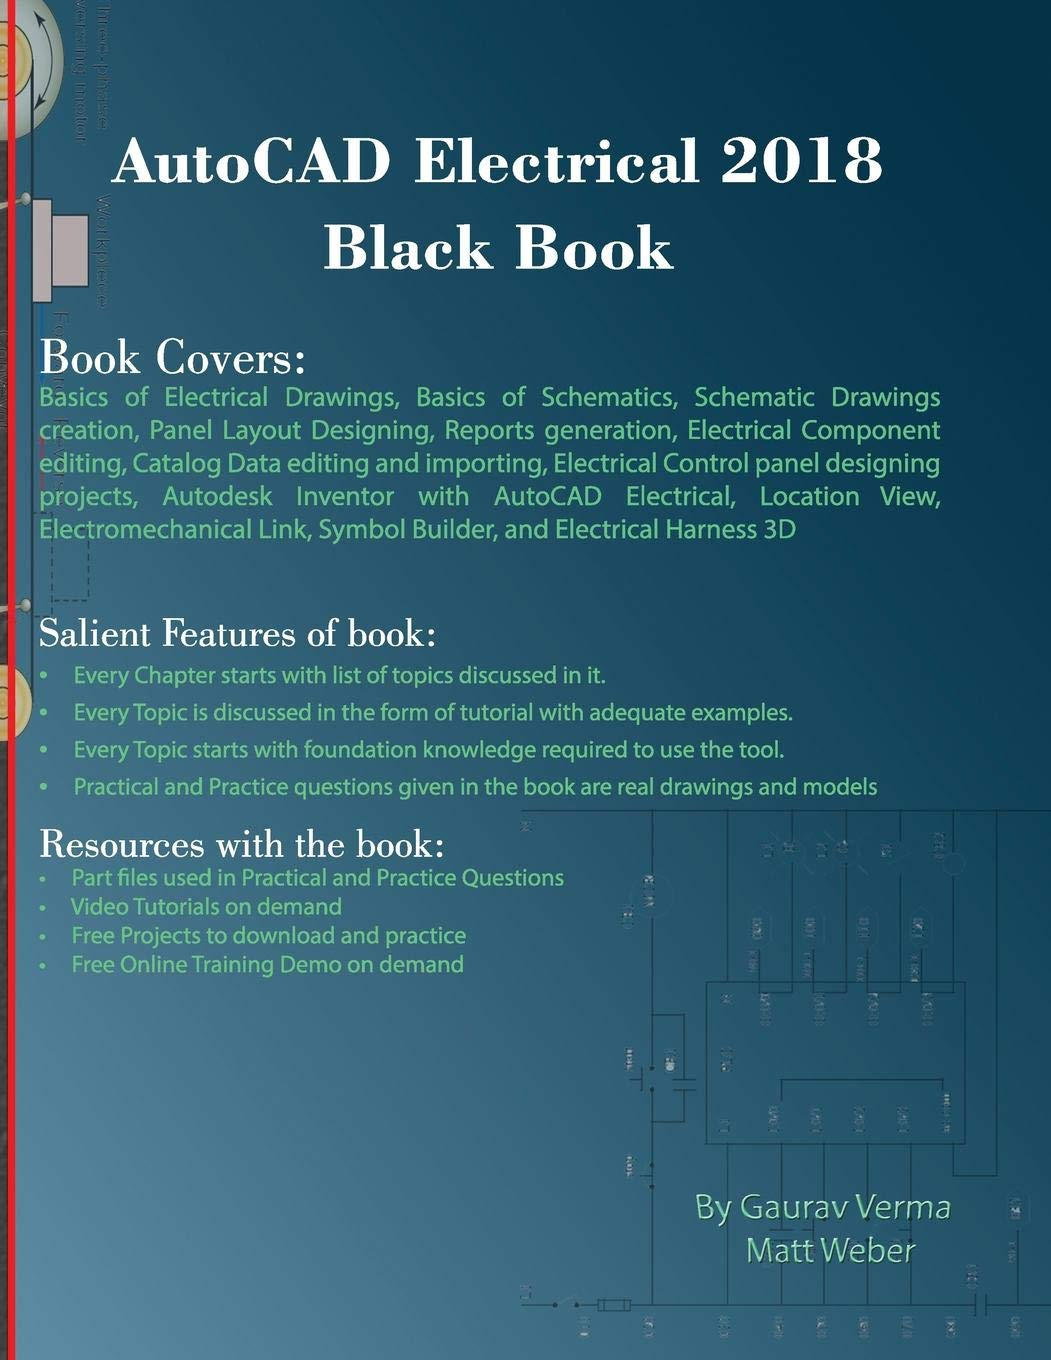 AutoCAD Electrical 2018 Black Book: Amazon.es: Gaurav Verma ... on electrical panel label template, circuit breaker panel template, free blank electrical panel schedules,